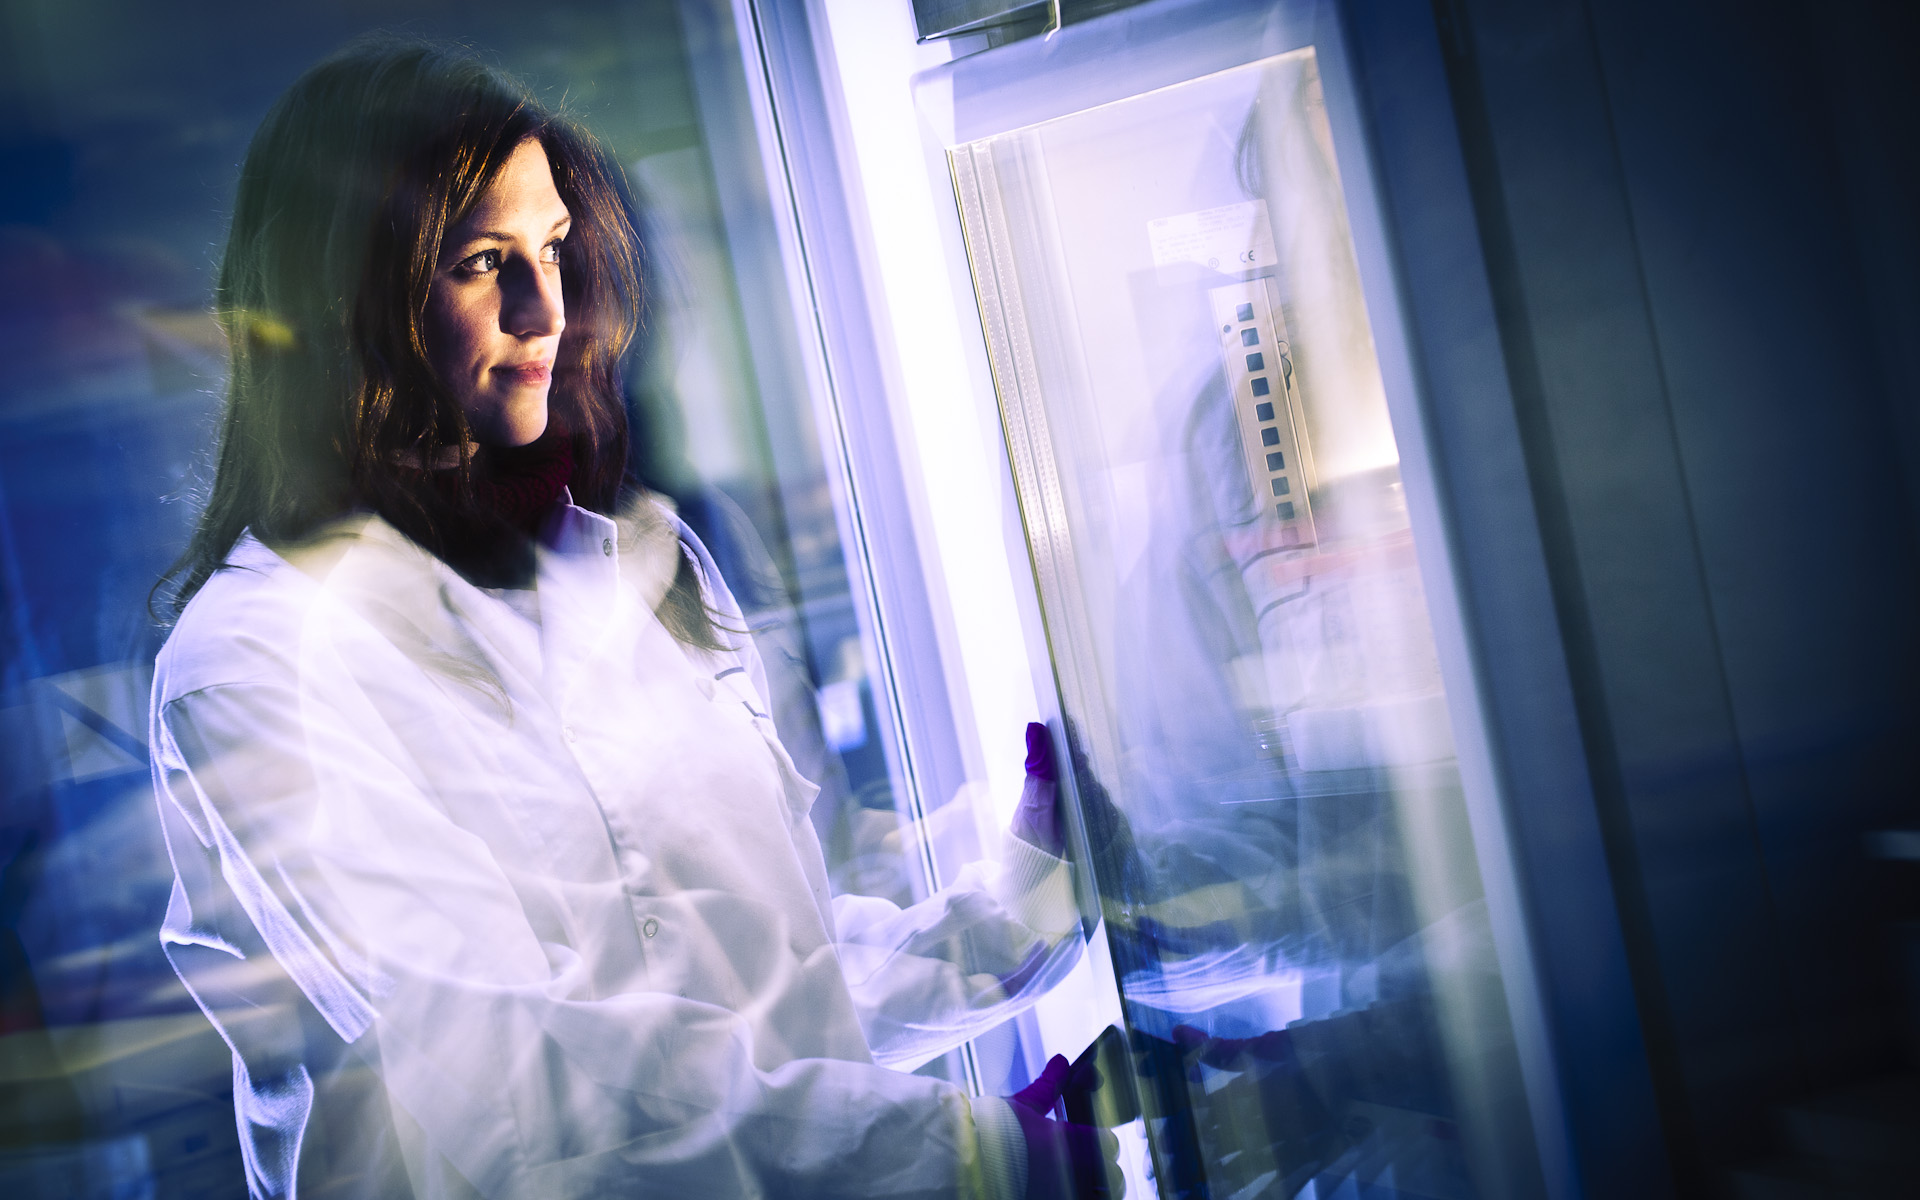 young female science student in white lab coat at fridge